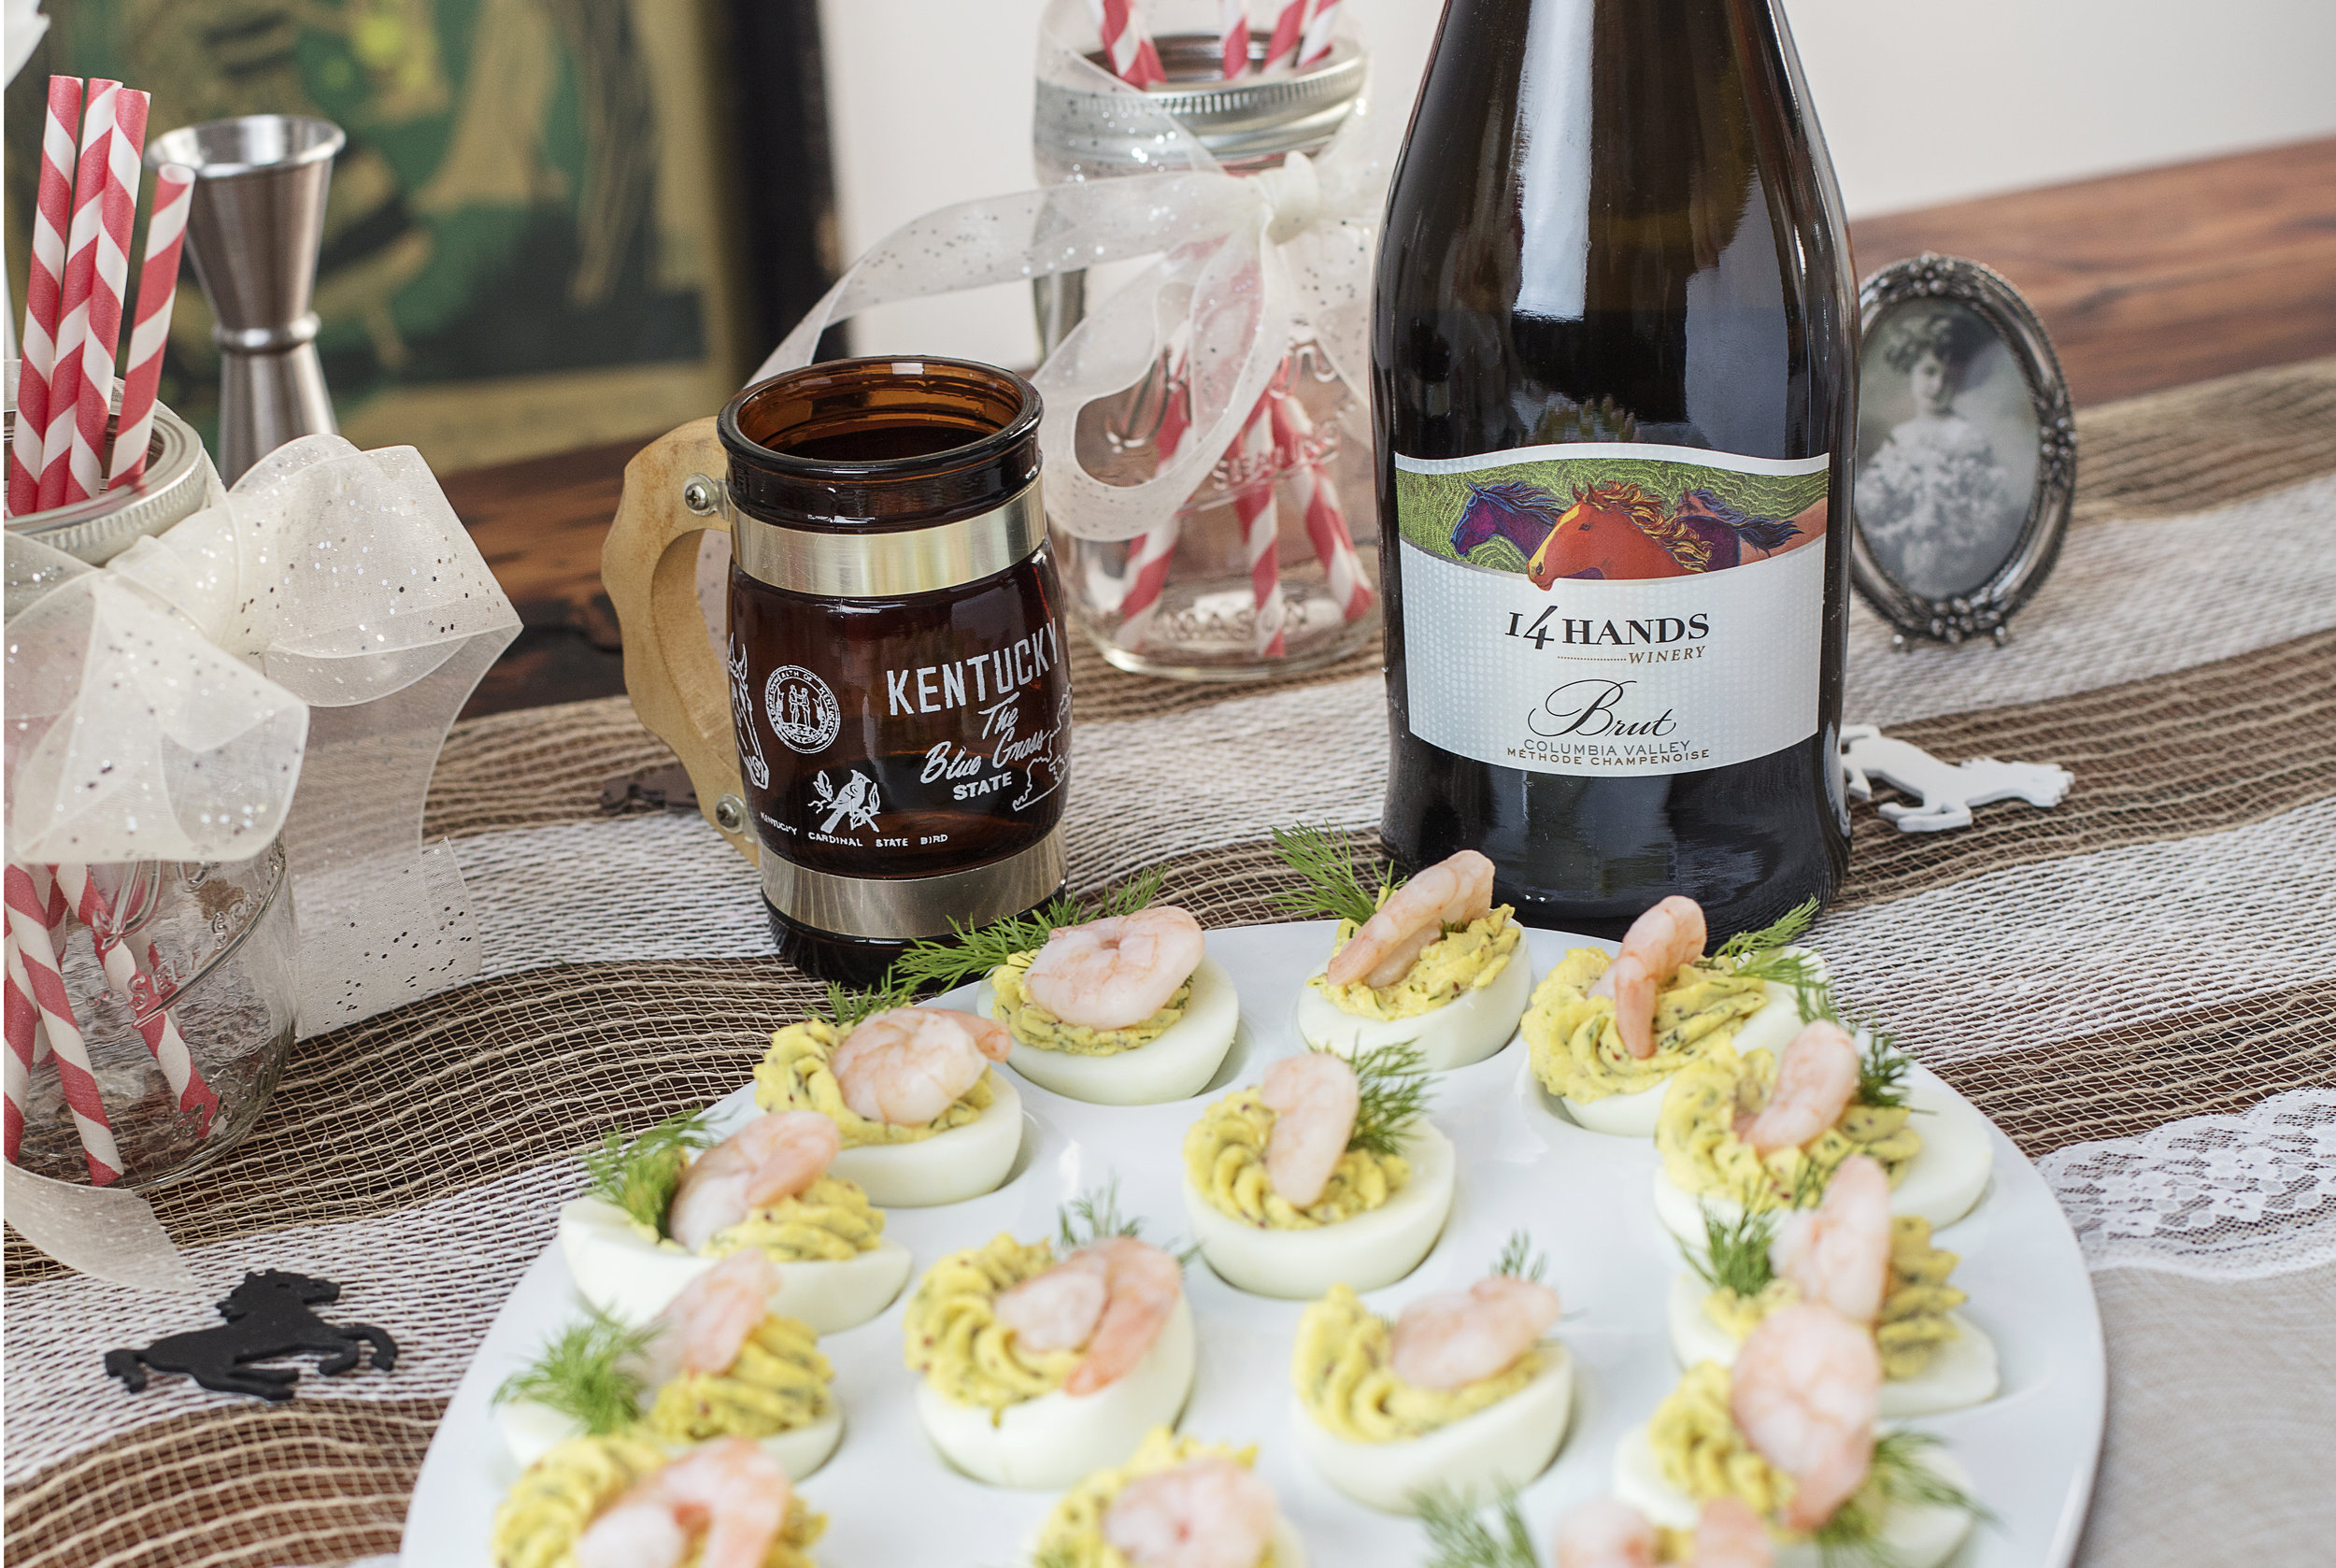 14 Hands Brut is a perfect wine pairing for Kentucky Derby Party recipes.